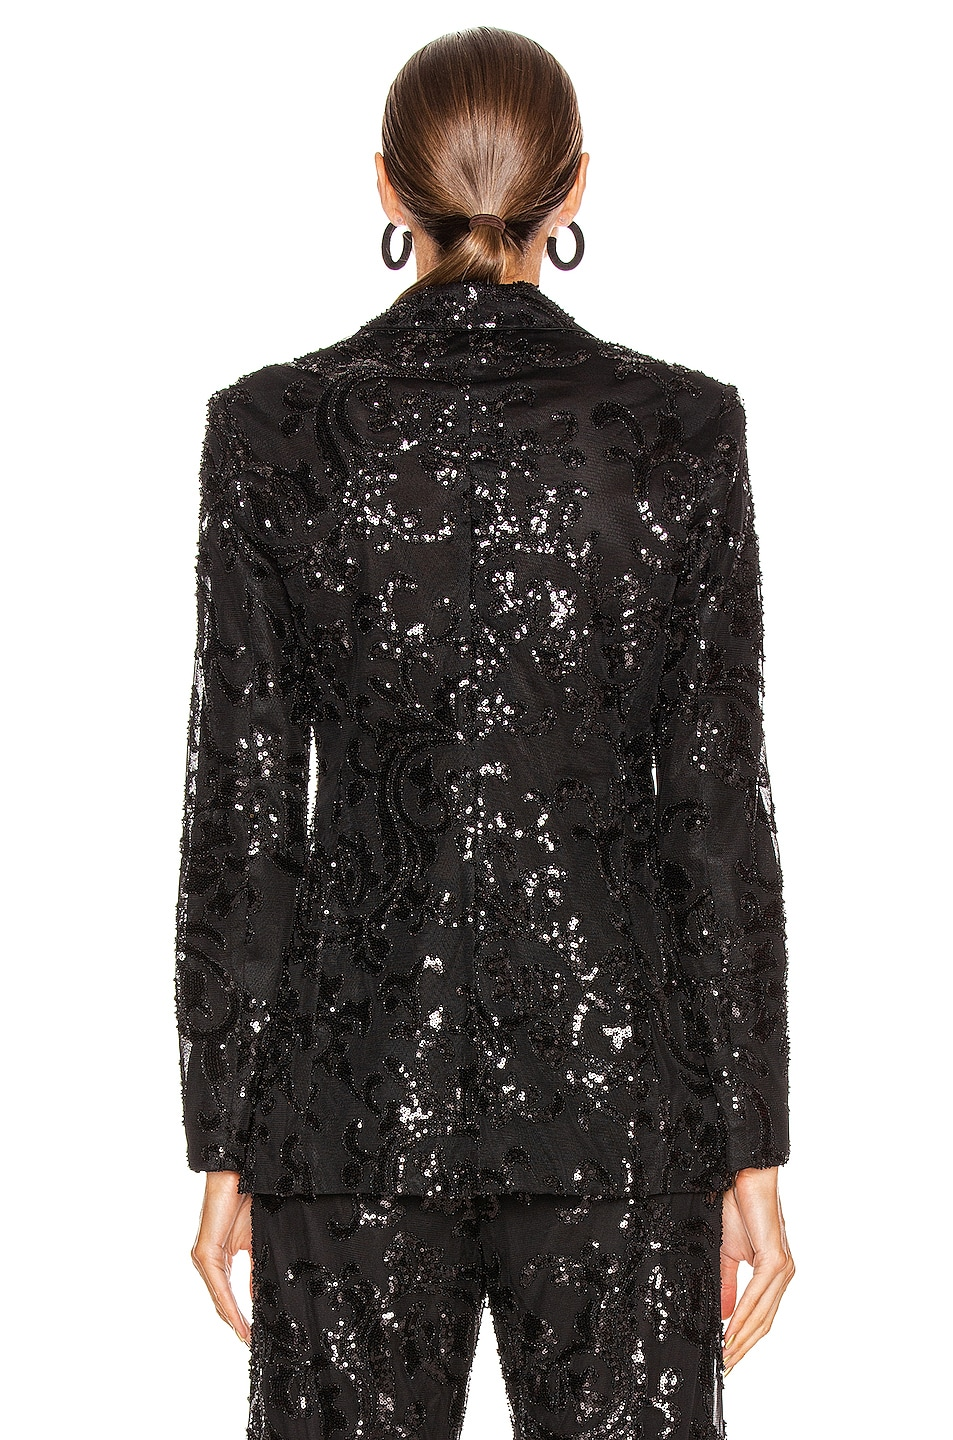 Image 3 of Alexis Firdas Jacket in Beaded Black